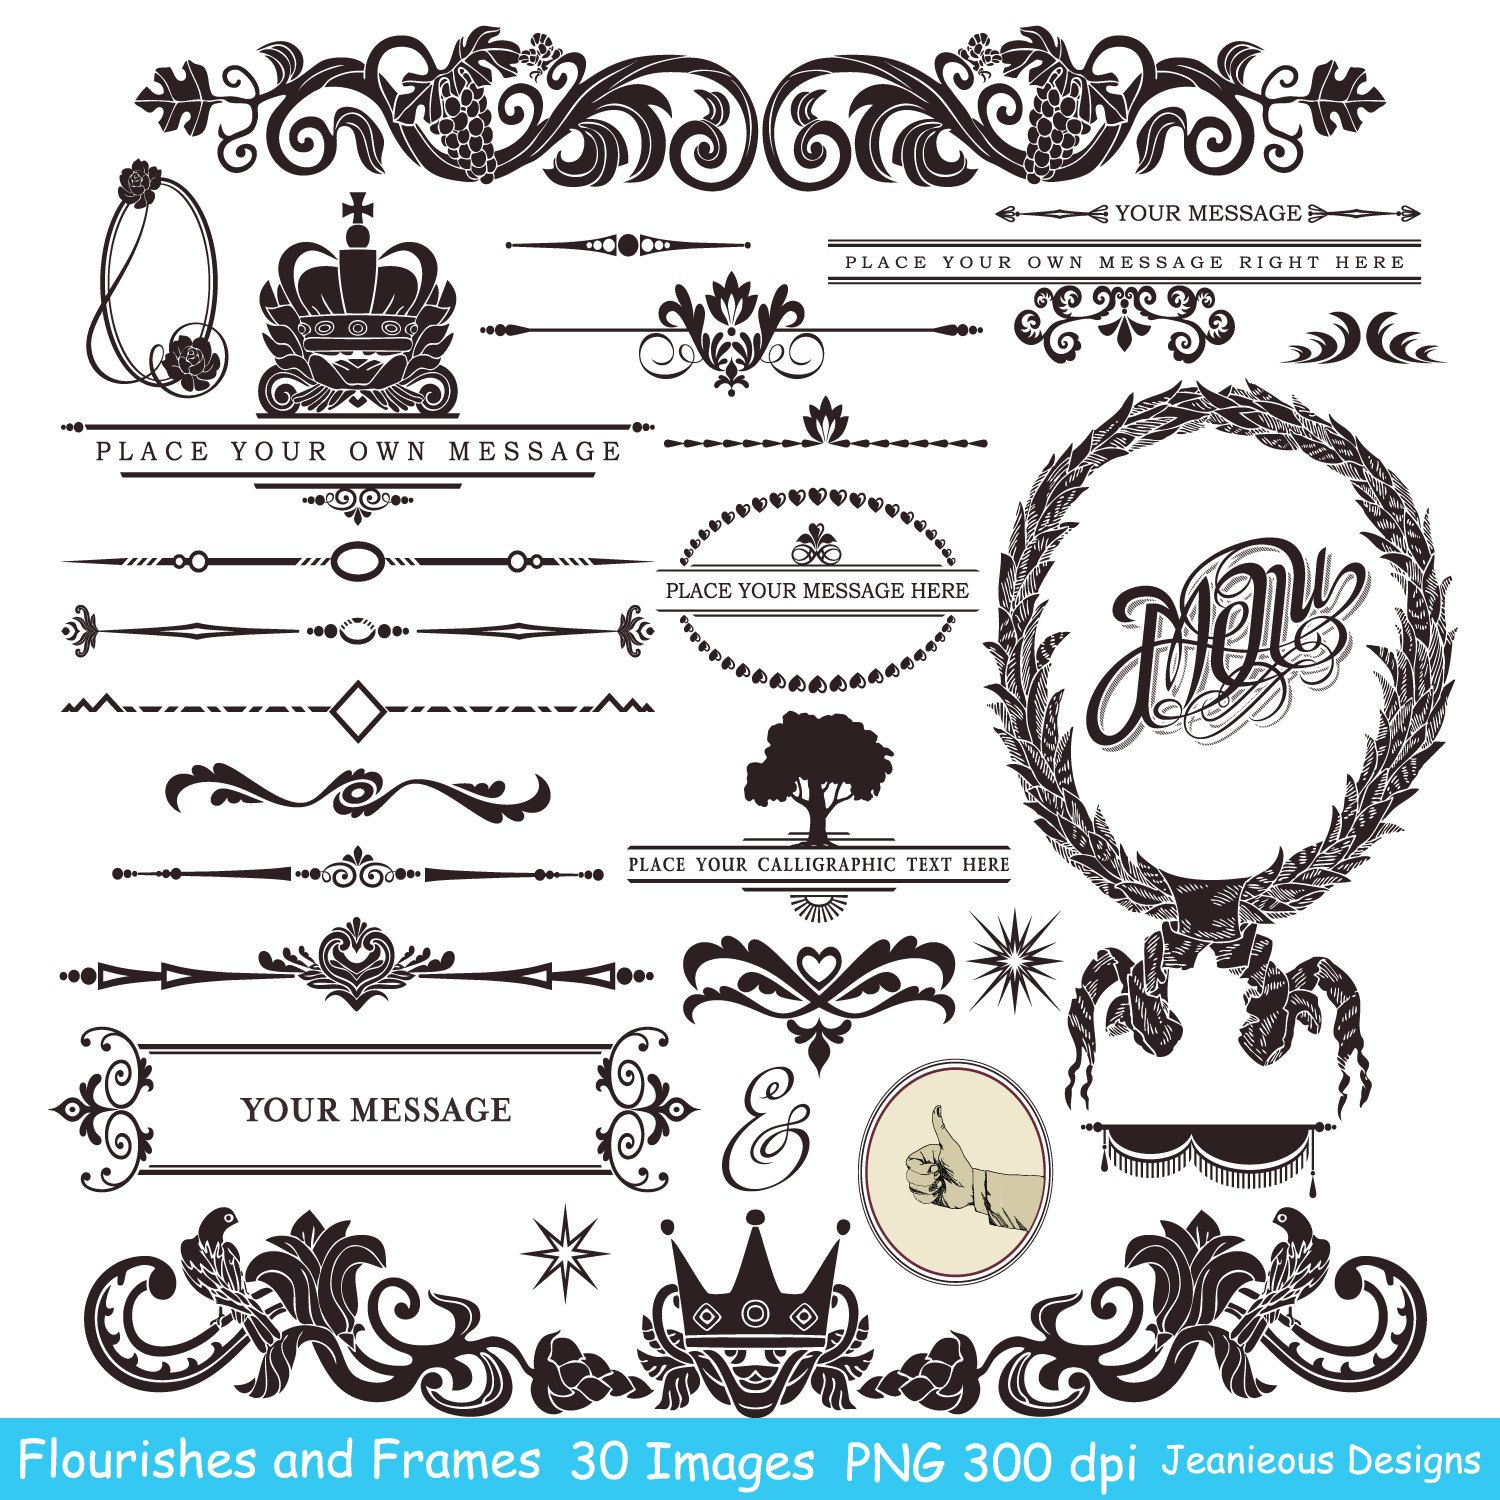 Vintage calligraphy clip art design style elements wedding vintage calligraphy clip art design style elements wedding invitation embellishments flourishes swirls and frame 008 stopboris Choice Image